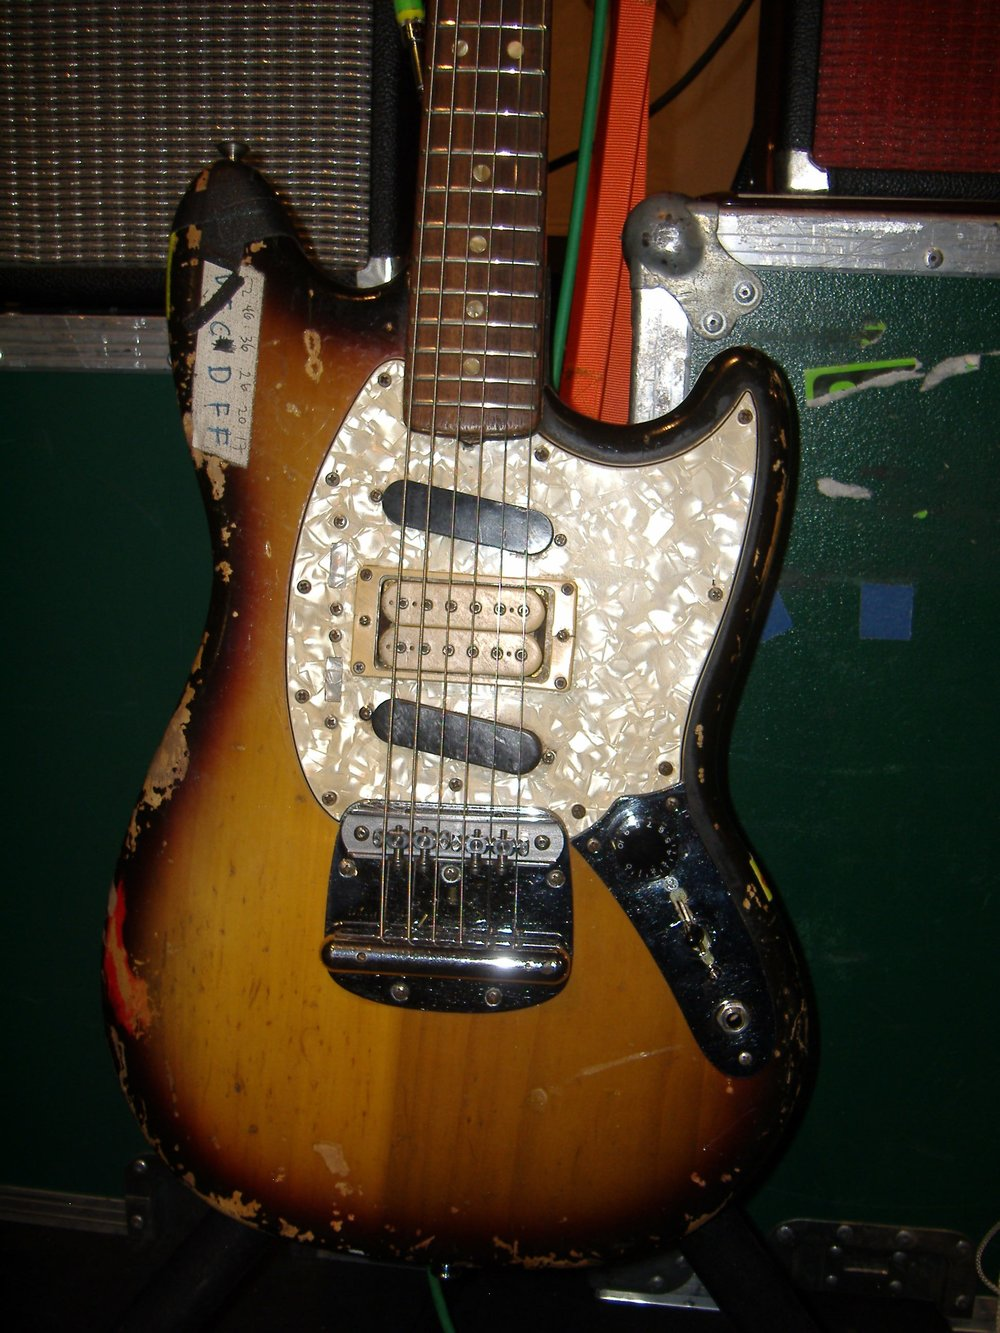 A Fender Mustang owned by Sonic Youth.